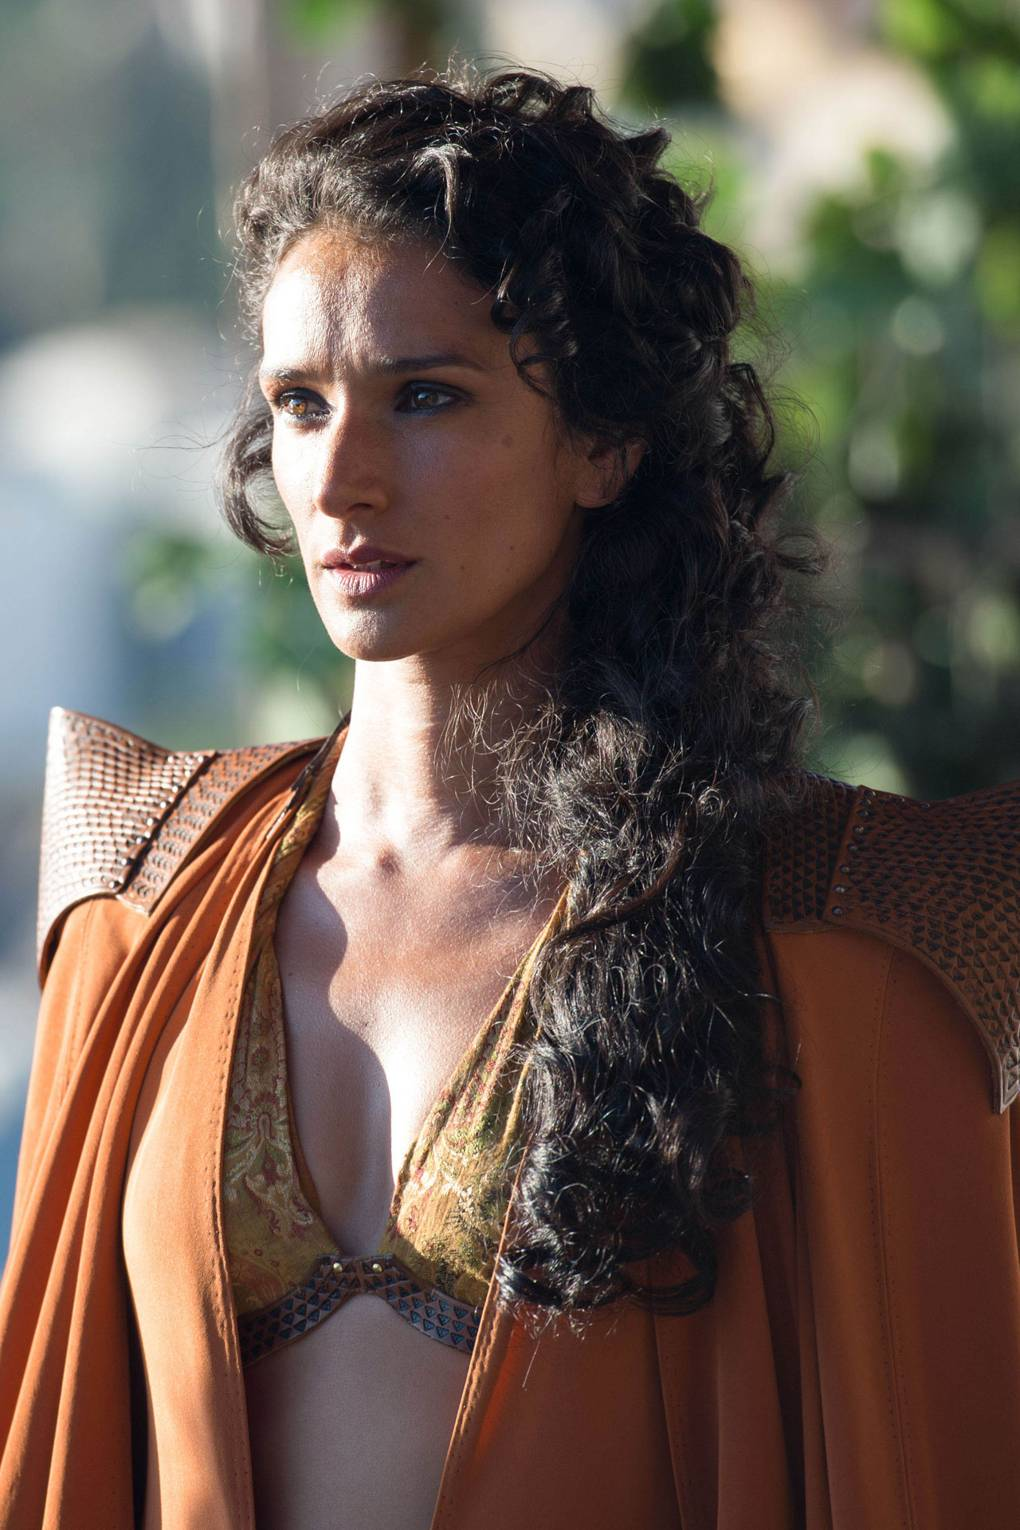 Indira varma nude big tits photo